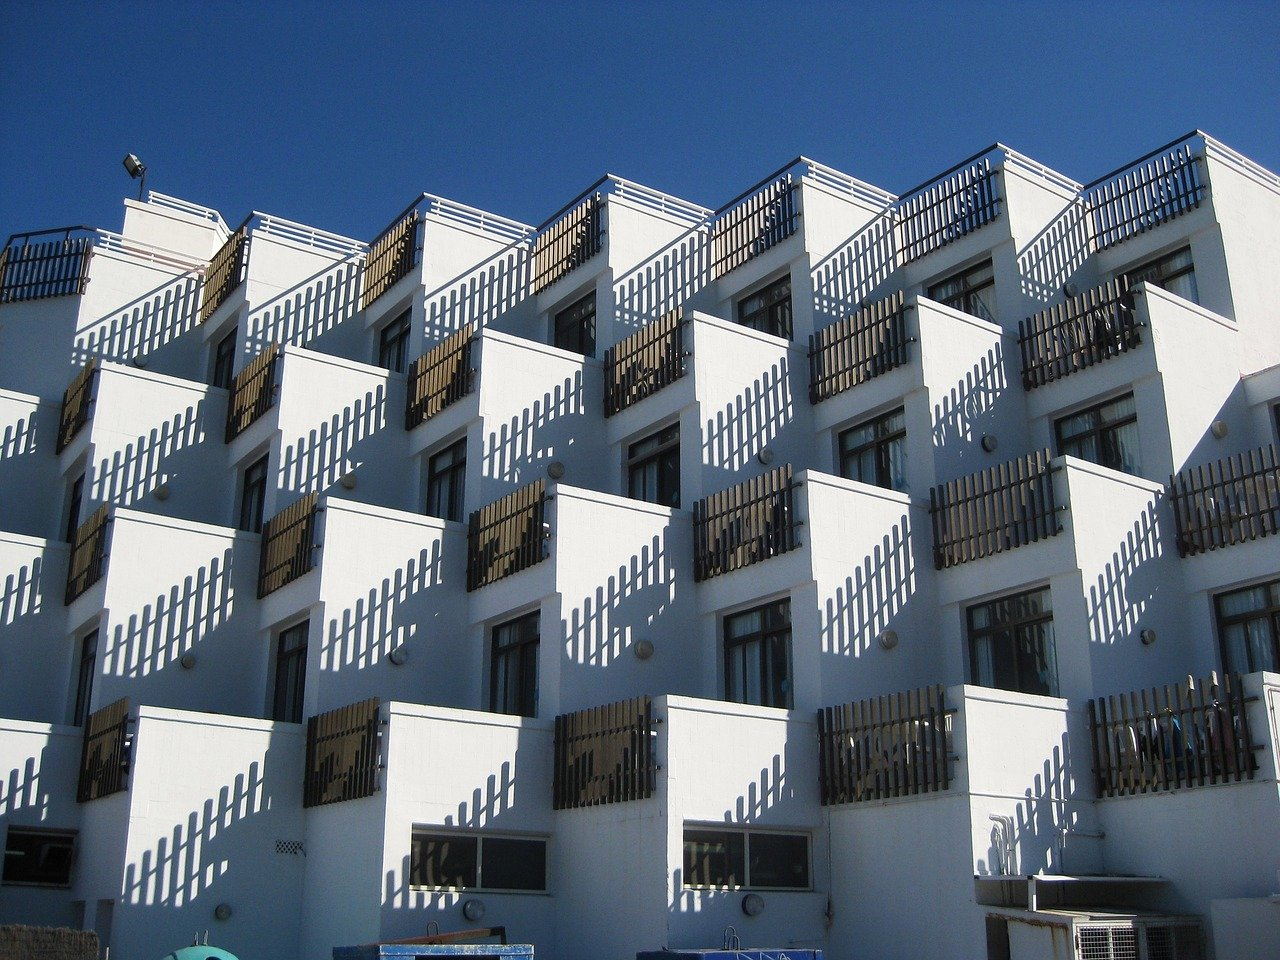 Tiny stacked apartments showing Simply Home Downsizing challenge of decorating micro condos.